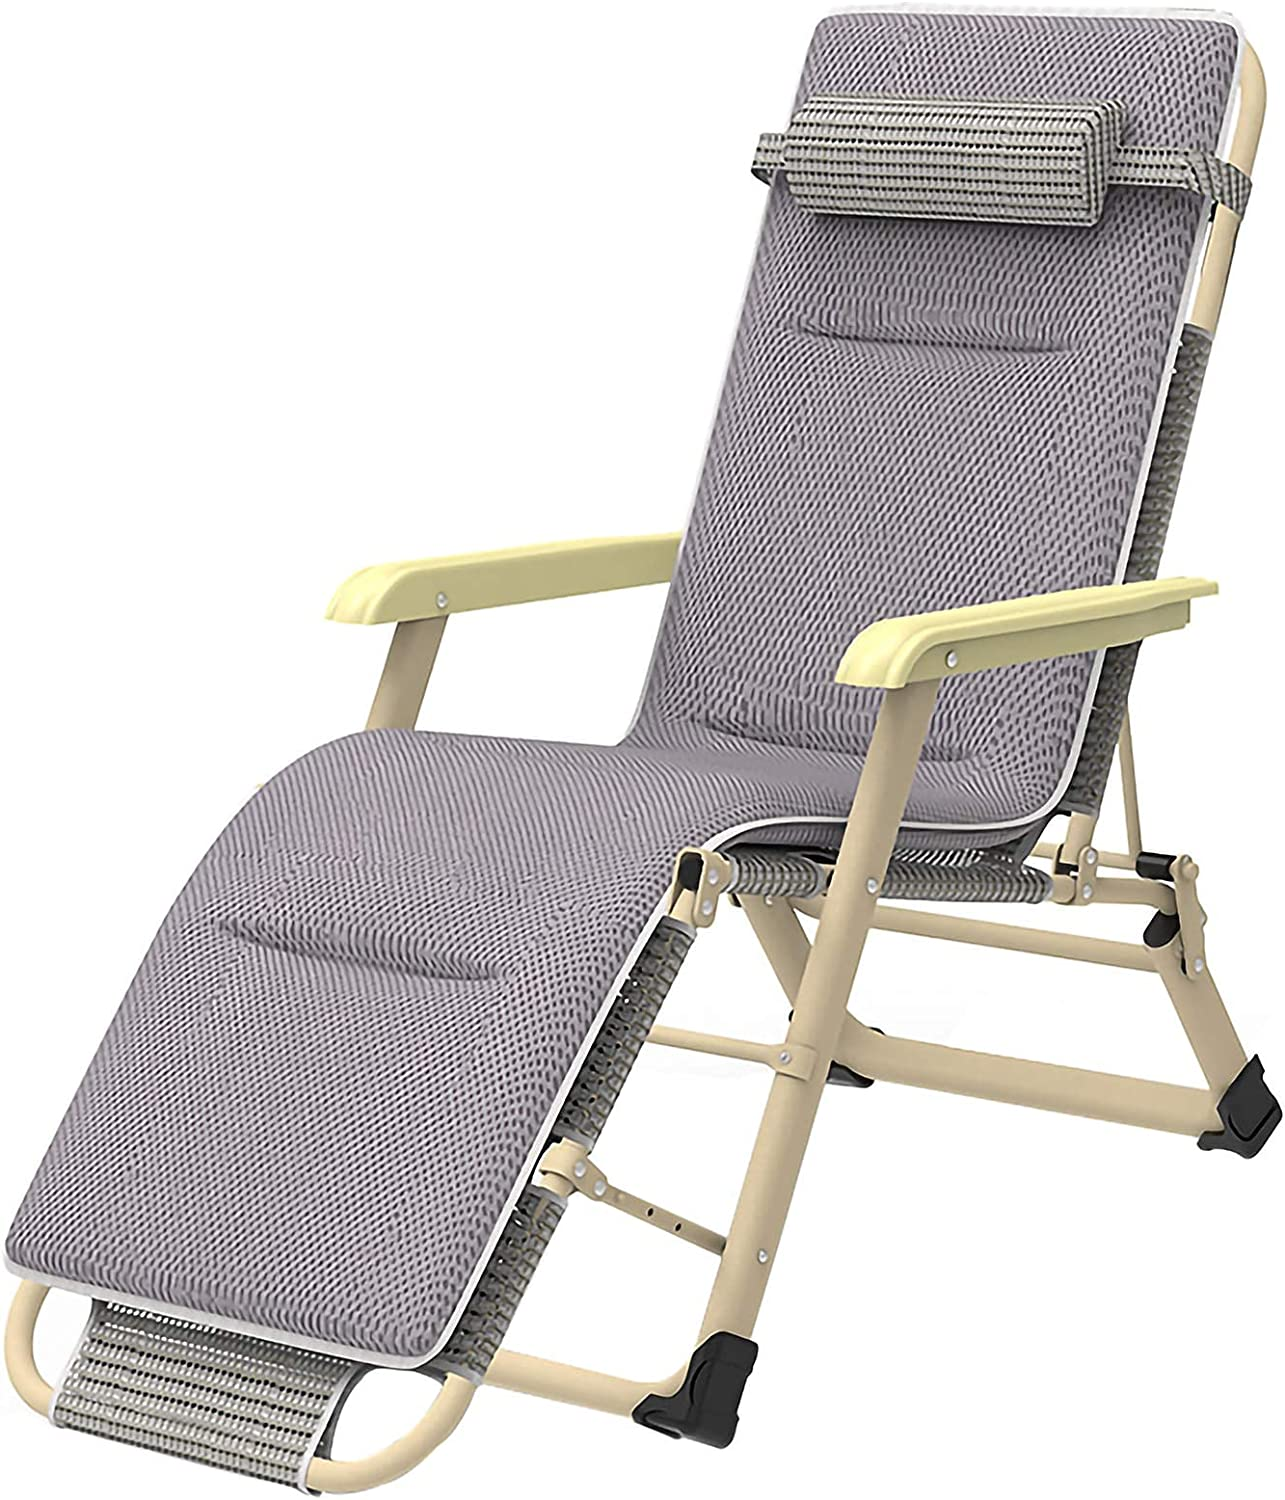 SXCDD Reclining Factory outlet Manufacturer regenerated product Outdoor Folding Multifunction Chairs Zer